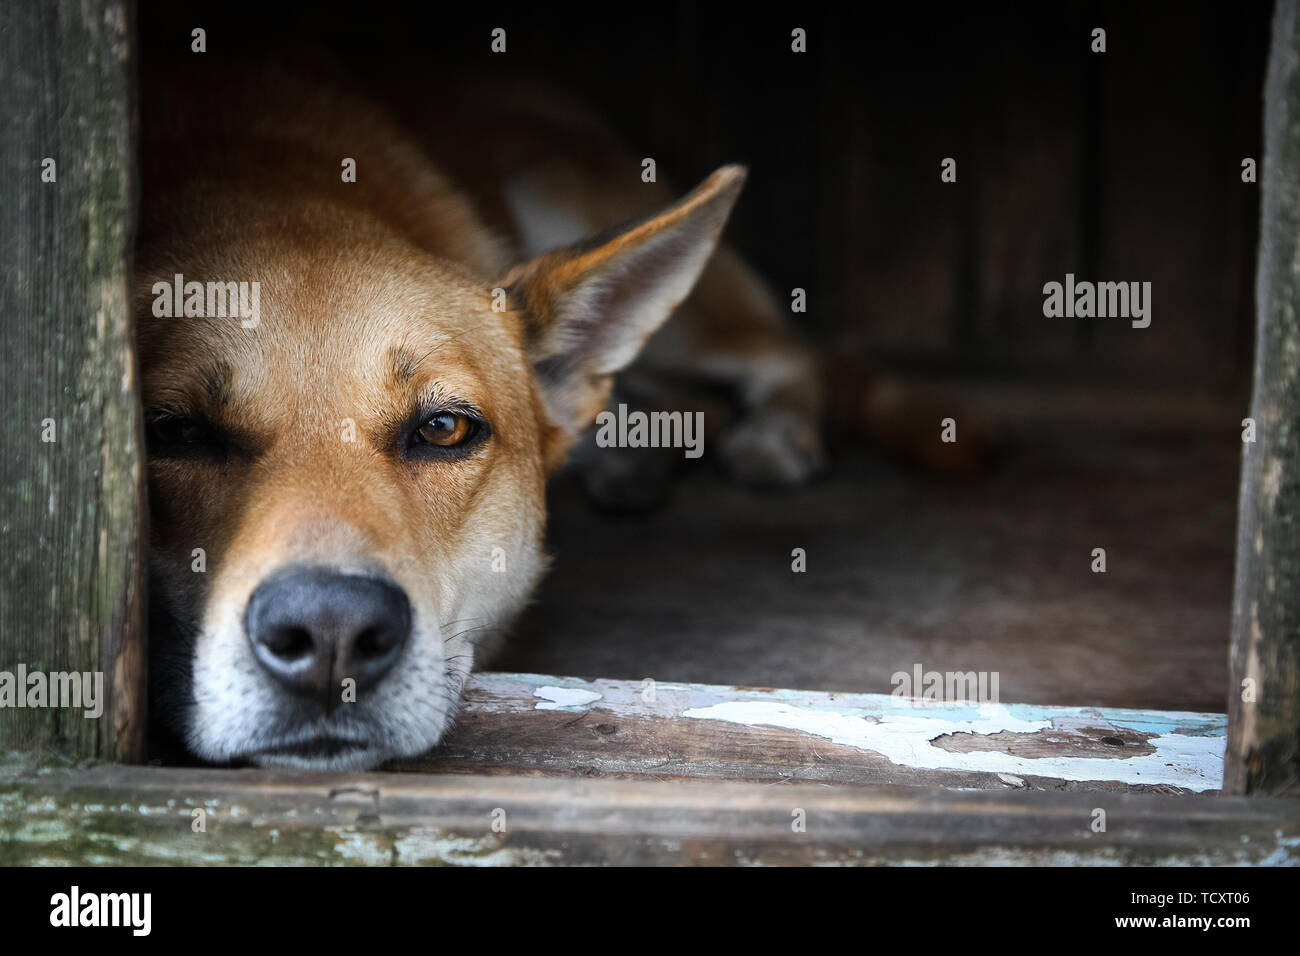 Sad view of an alone brown dog lying in the kennel - an old wooden house - Stock Image